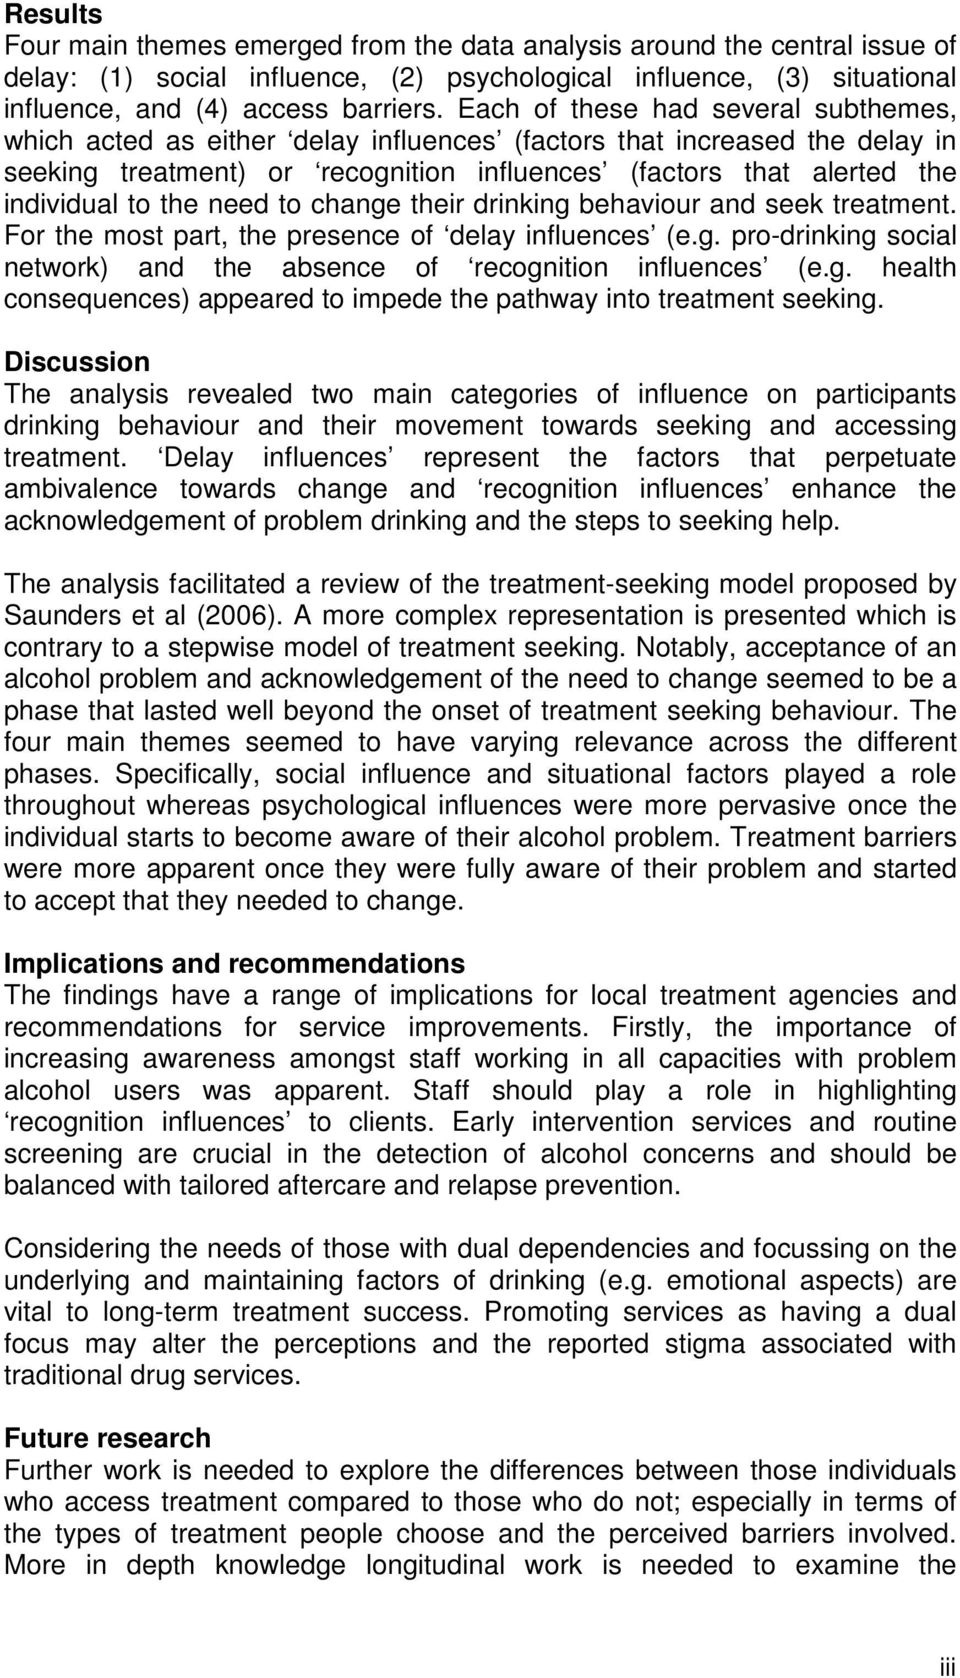 the need to change their drinking behaviour and seek treatment. For the most part, the presence of delay influences (e.g. pro-drinking social network) and the absence of recognition influences (e.g. health consequences) appeared to impede the pathway into treatment seeking.